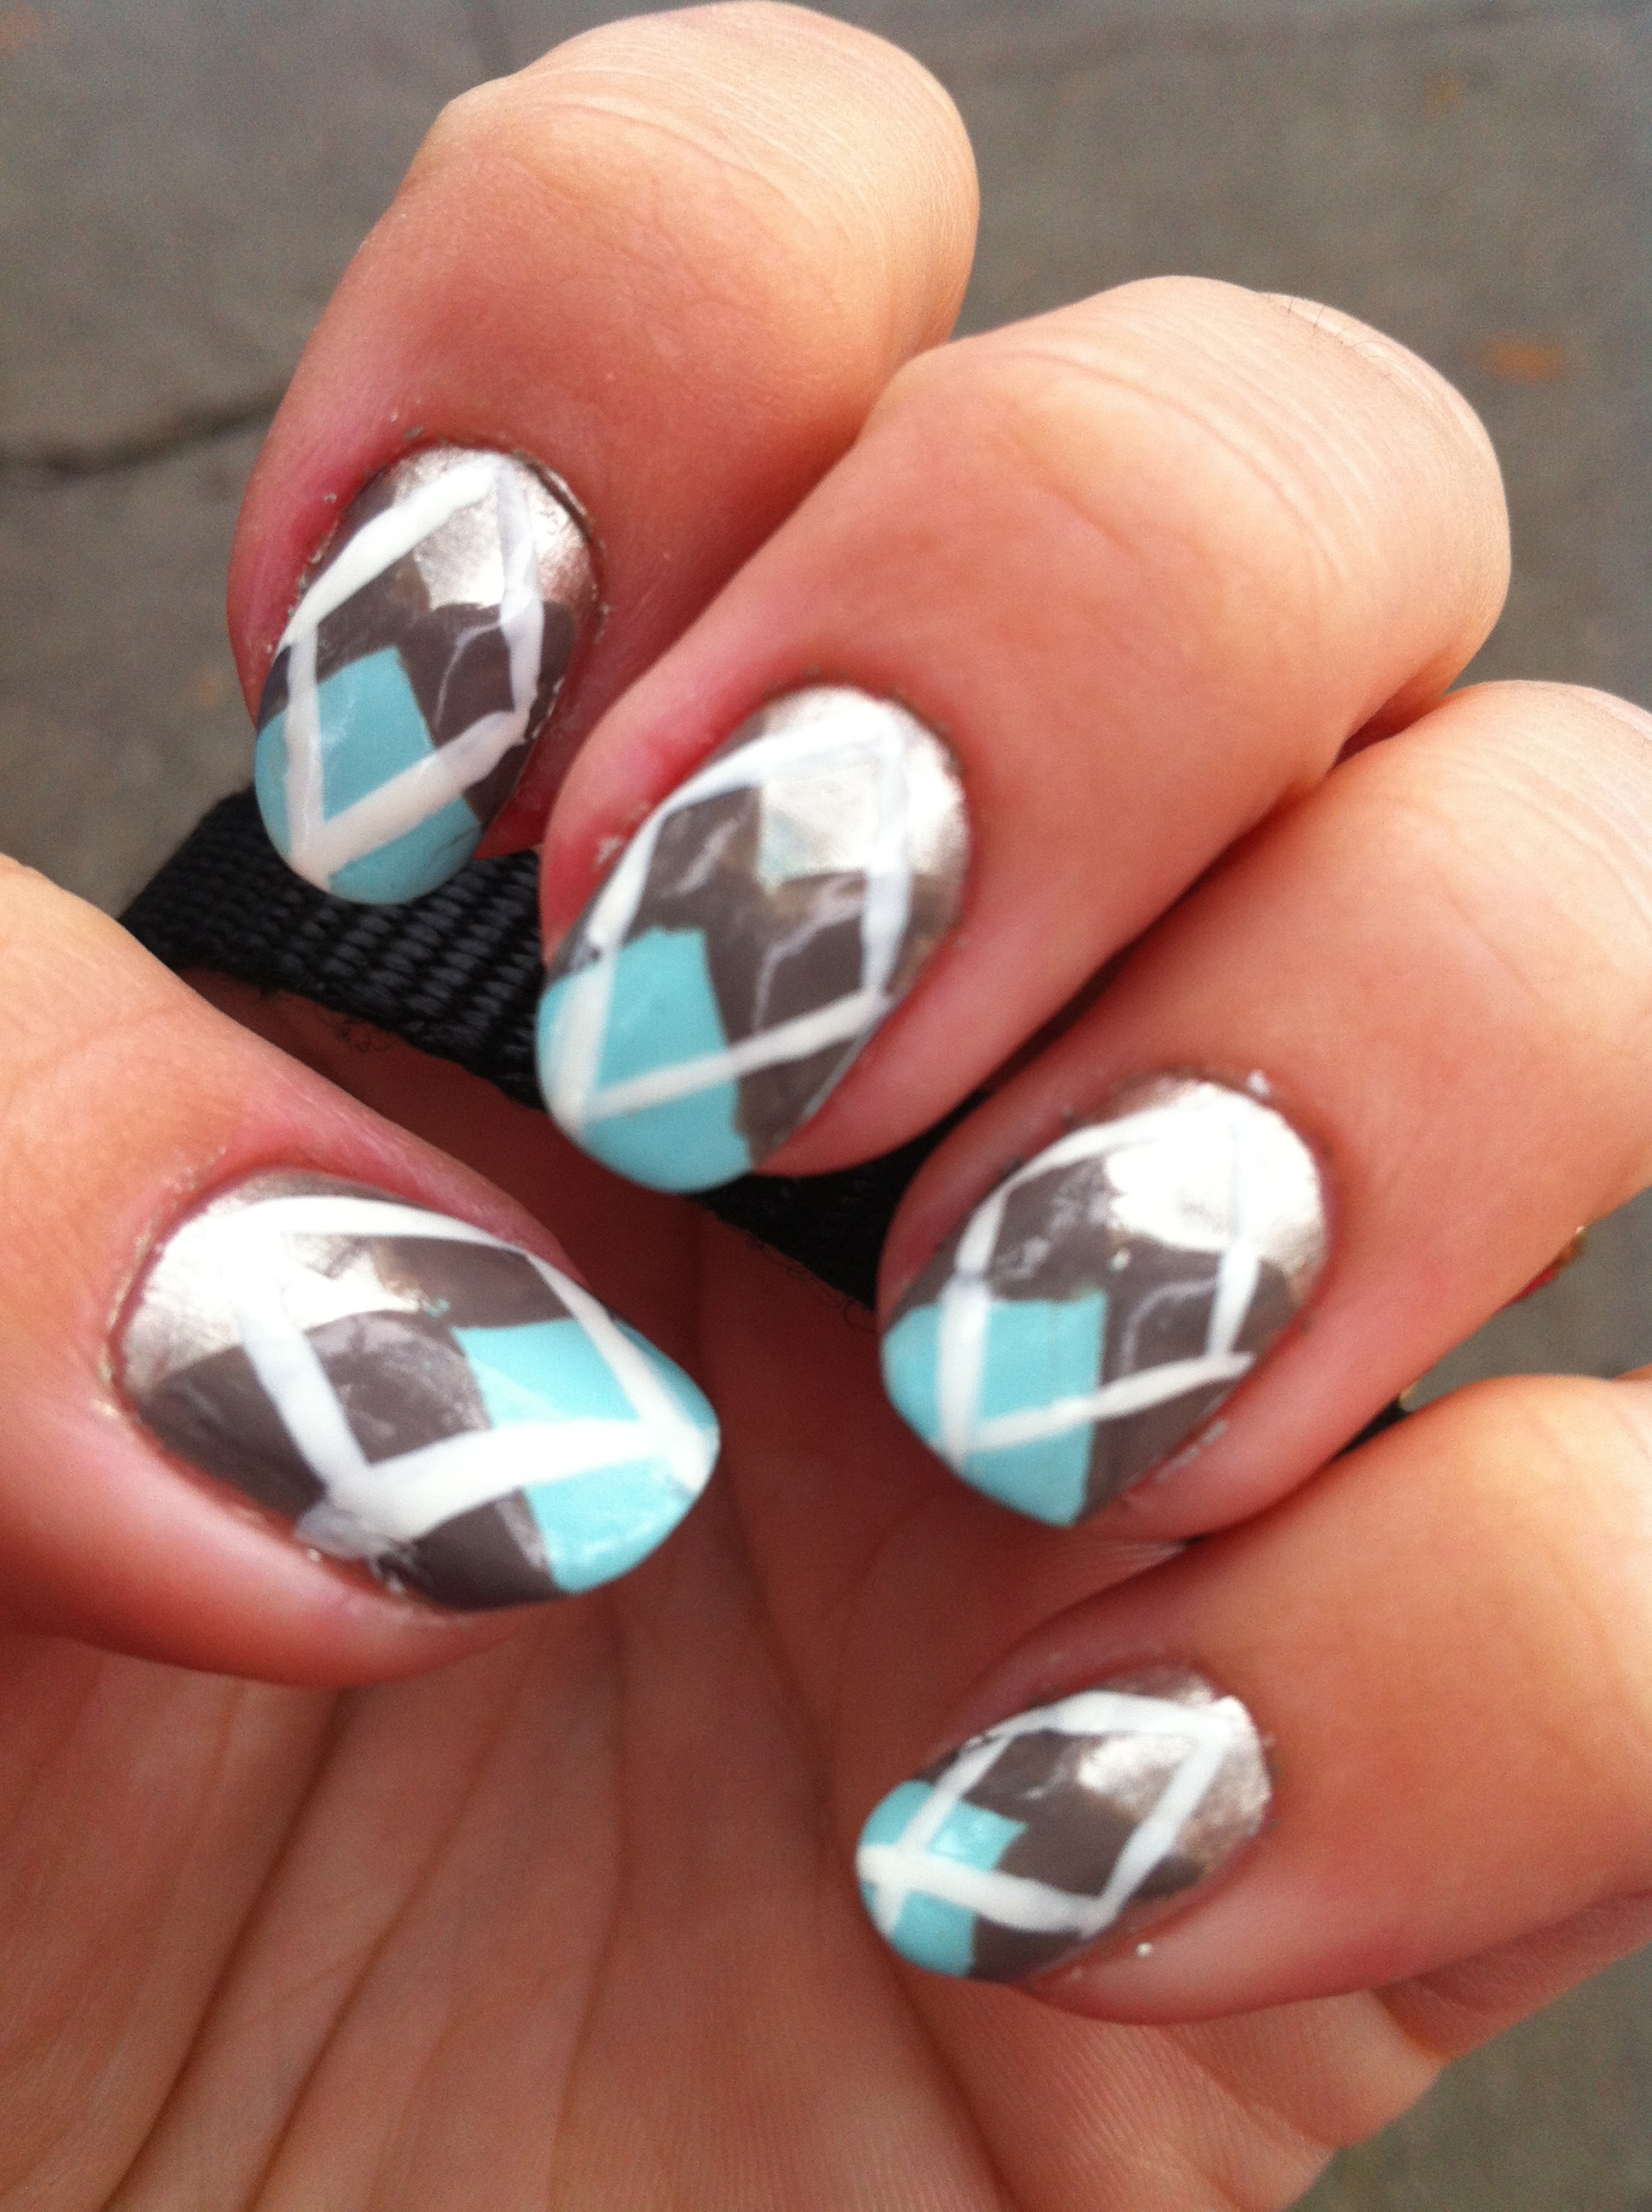 Nail Art Designs And Nail Polishes For French Manicure: Nail Art